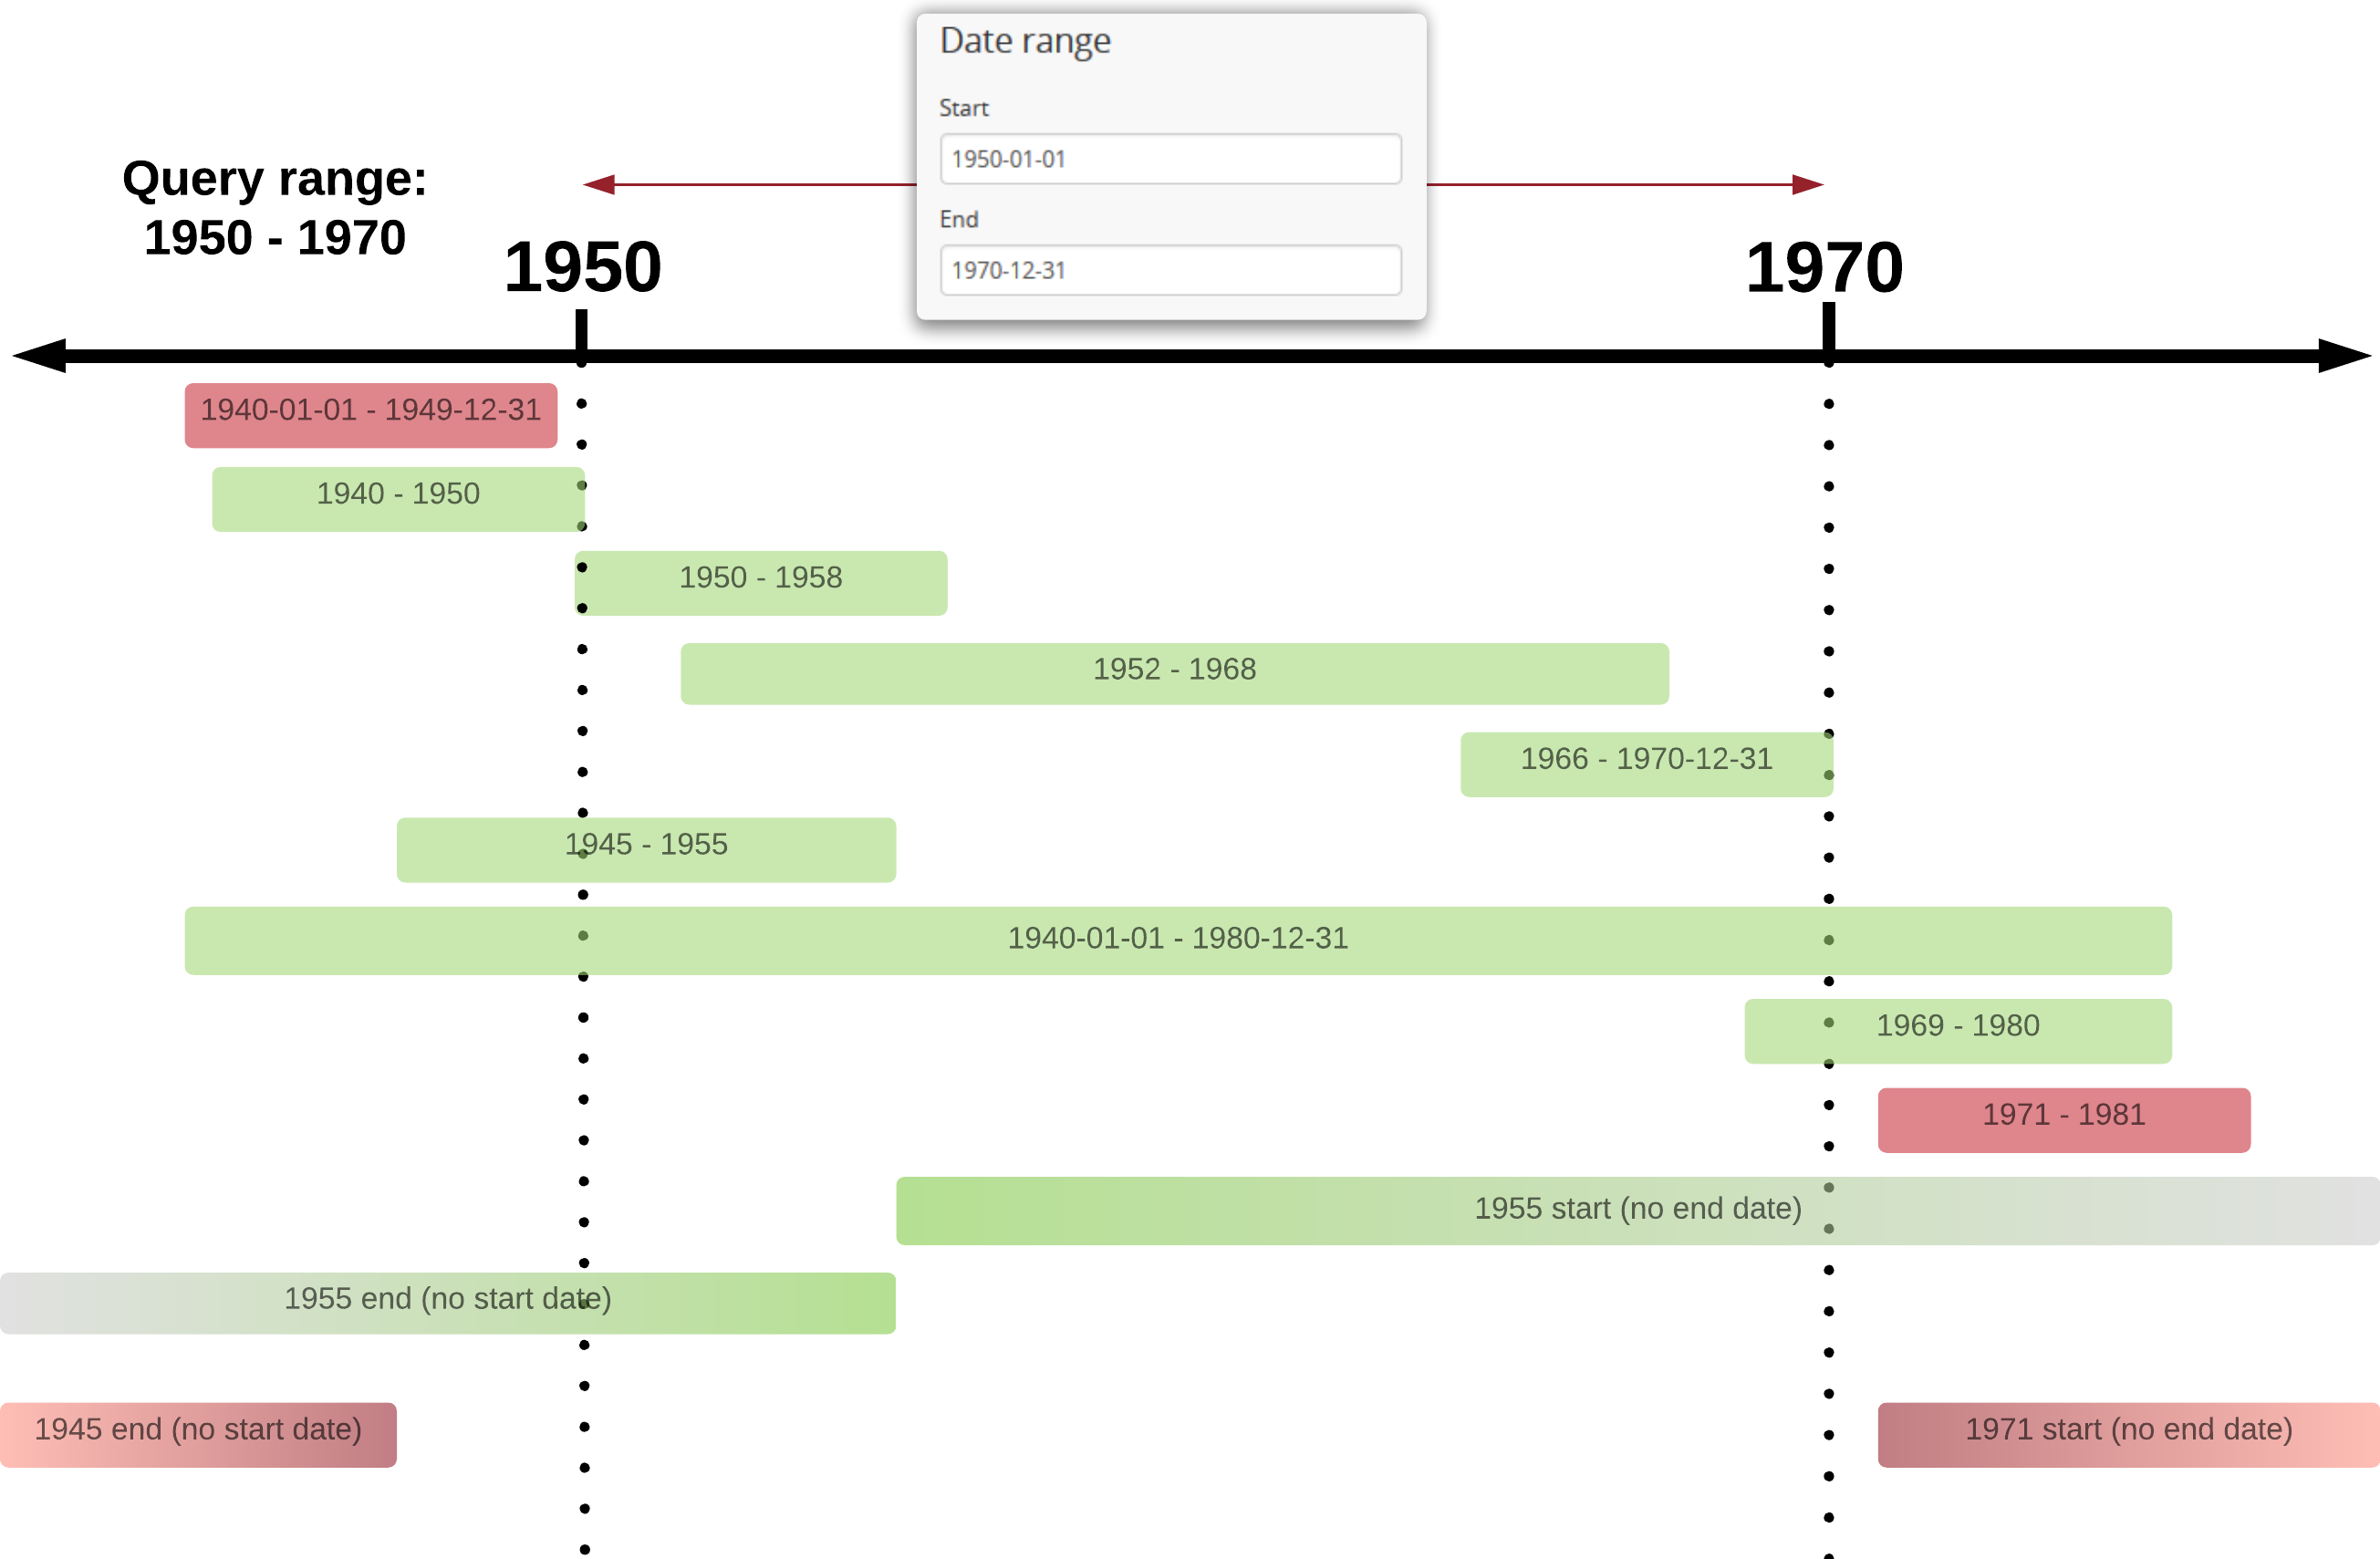 Advanced Search Documentao Version 24 Atom Open Source 1952 International Engine Diagram An Example Of Results Returned For A 1950 1970 Query Using The Overlap Option